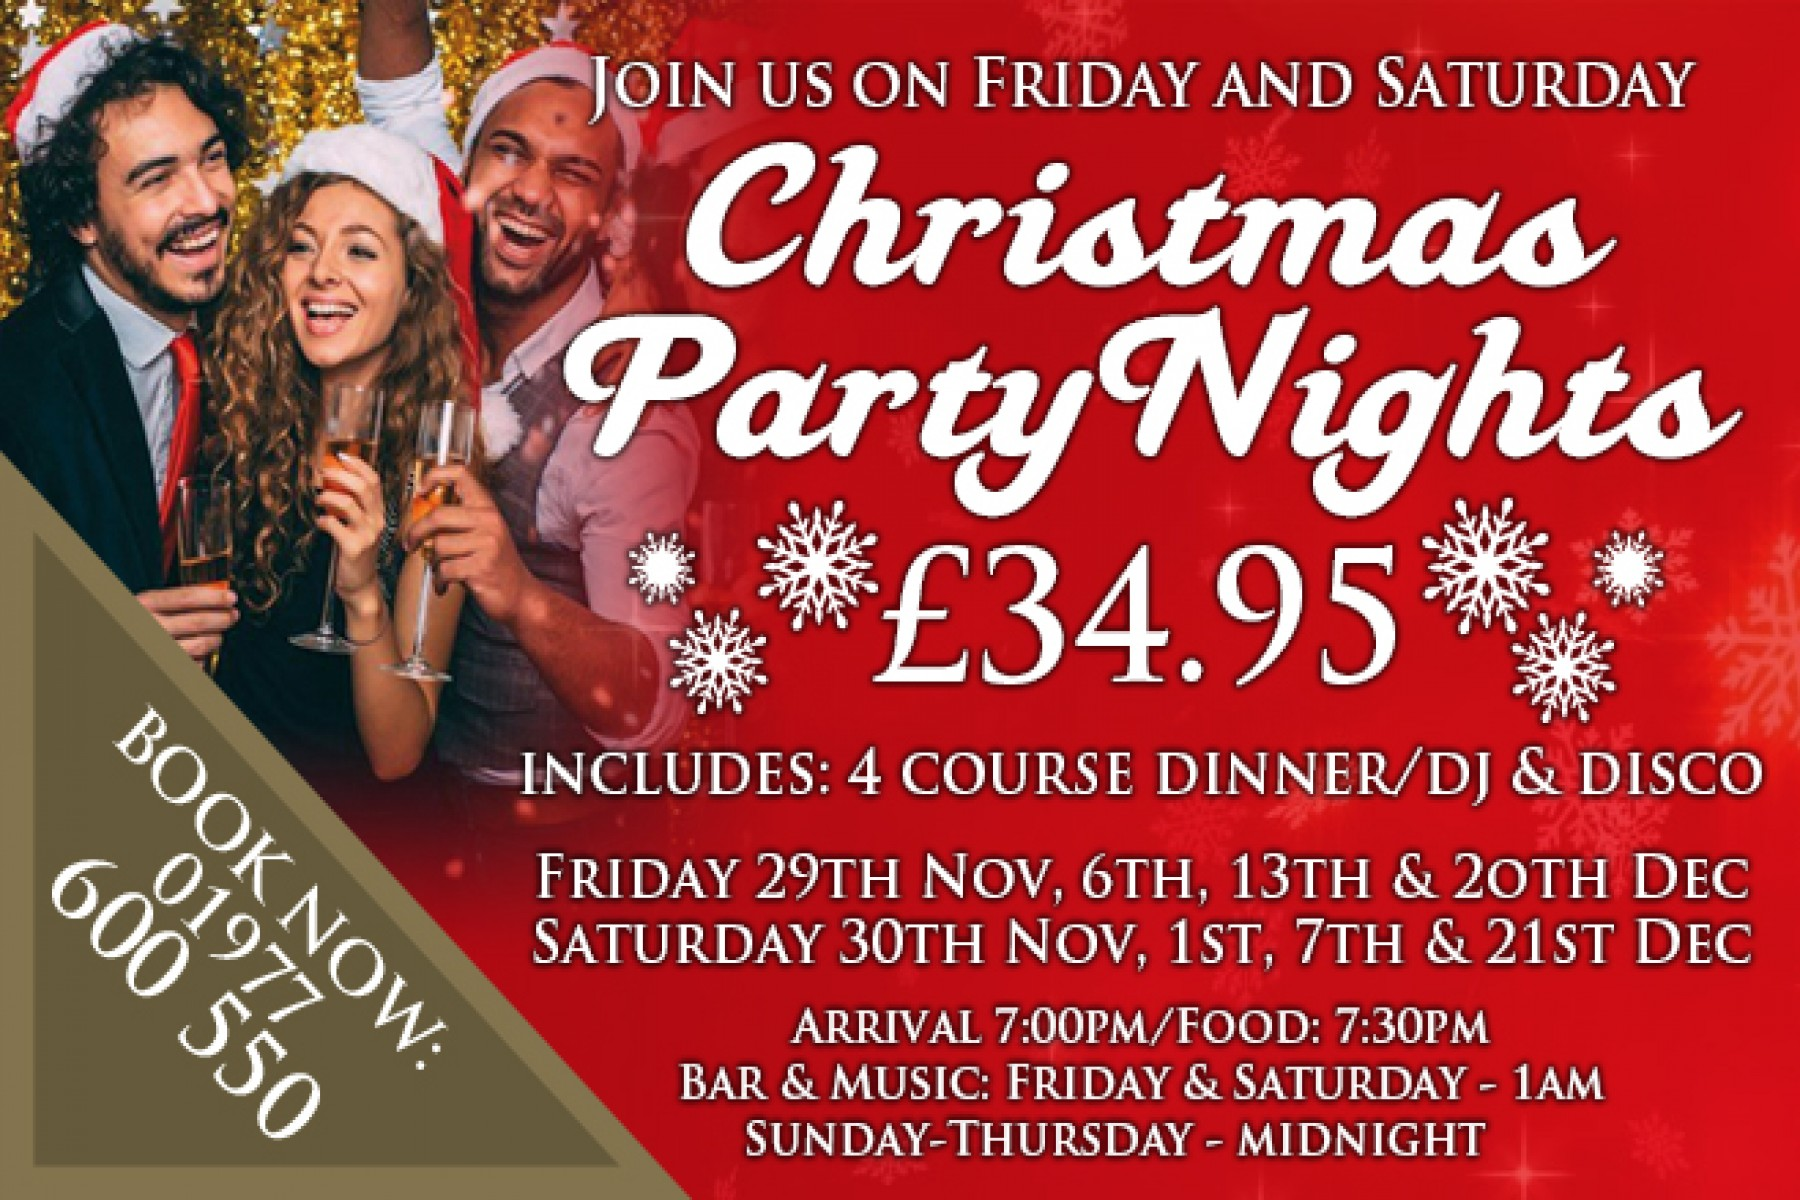 Christmas Party Night (21st December 2019)